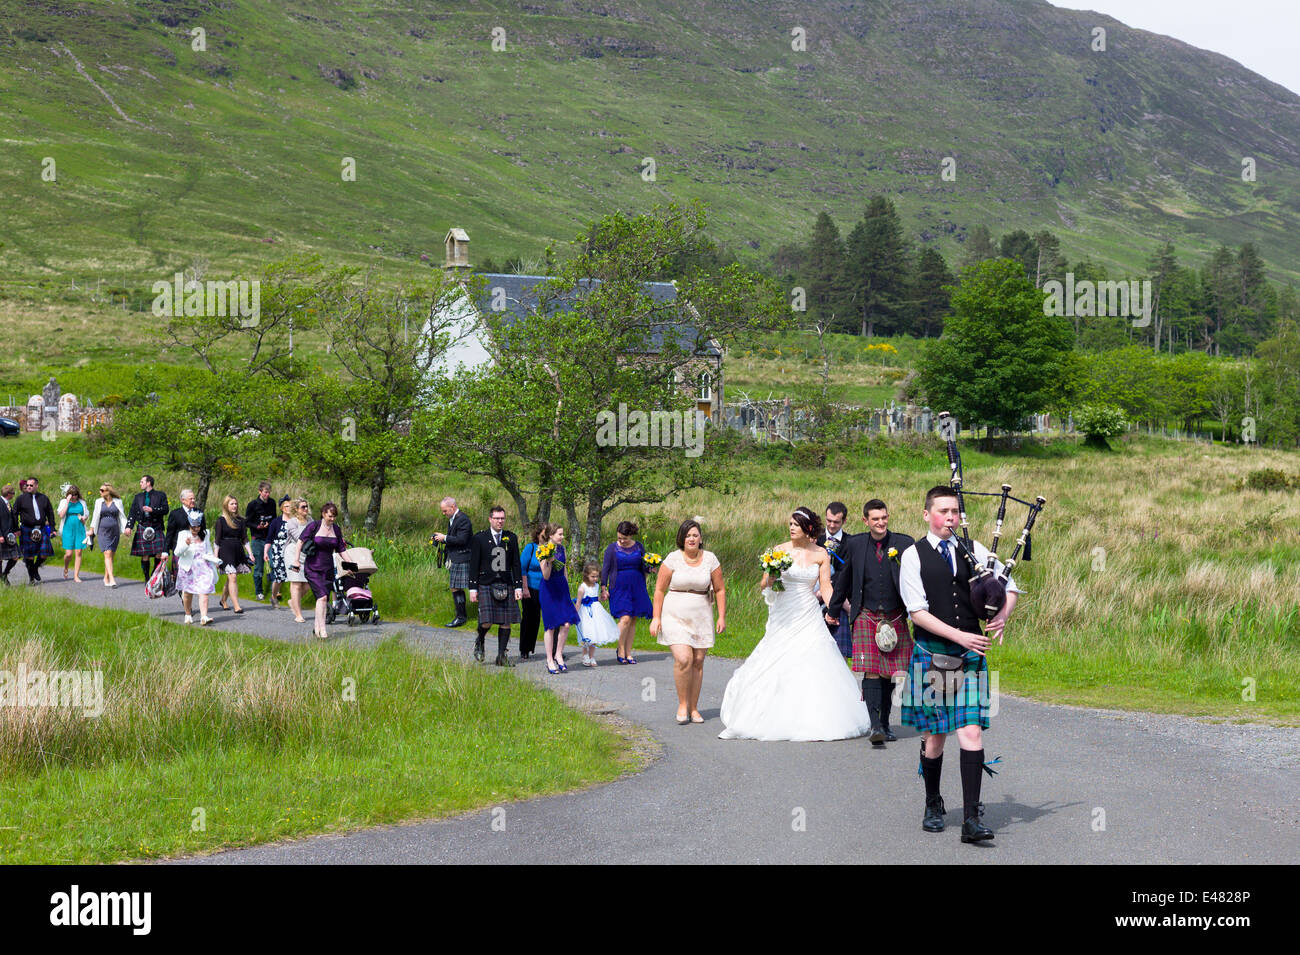 Highland Scottish wedding.  Piper leads procession of bride, groom and guests from Clachan Church in the Highlands Stock Photo